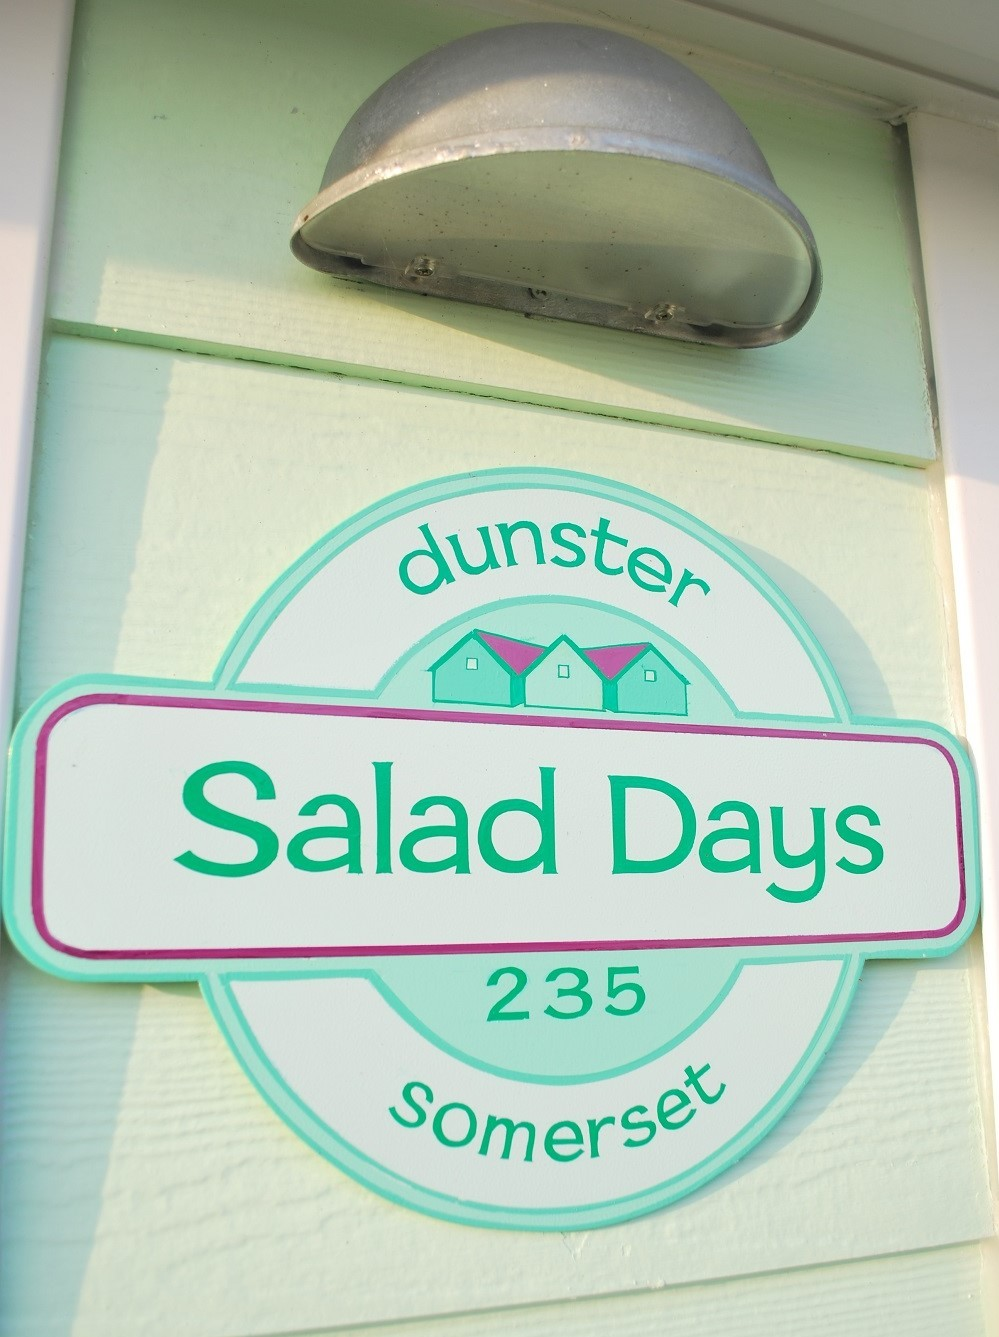 dunster beach holidays, salad days chalet, dunster chalet, Salad Days, Beach Hut, Beach Huts, Colour, Dunster, Dunster Beach, Beach, Beach Hut, Chalet, Accommodation, Exmoor, Somerset, Dunster beach hut, chalet in dunster, beach hut somerset, sign, hand painter